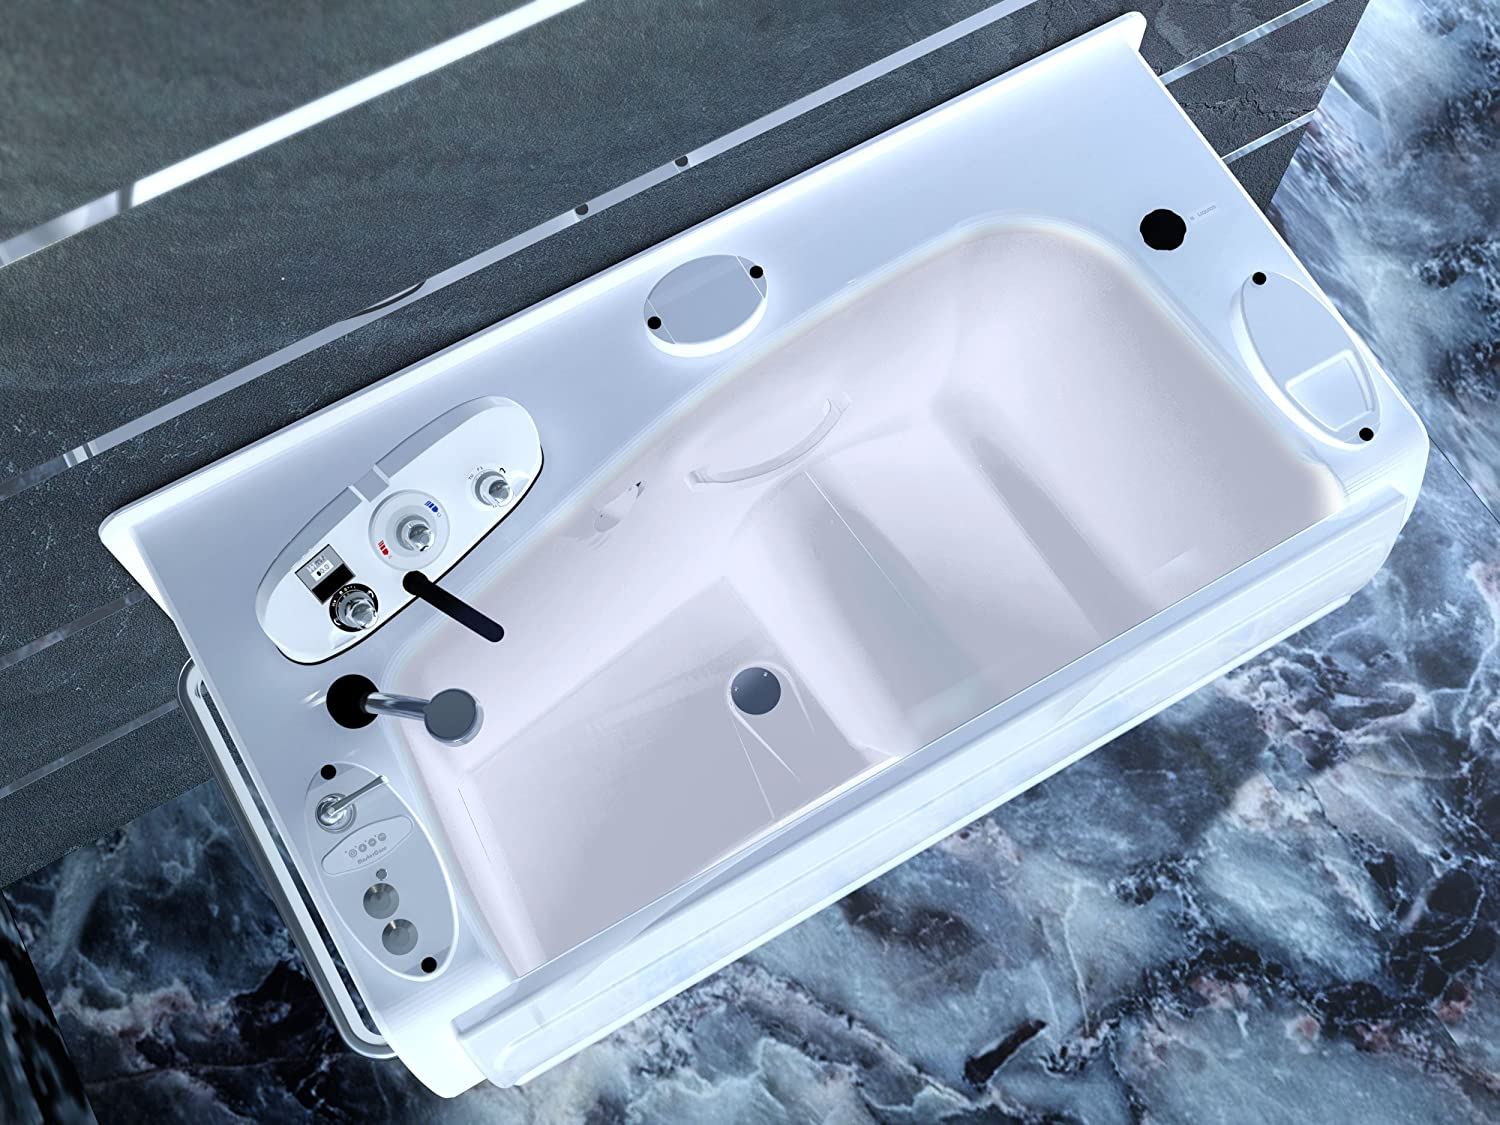 Entree Walk-in Bath Tub Gen II - - Amazon.com